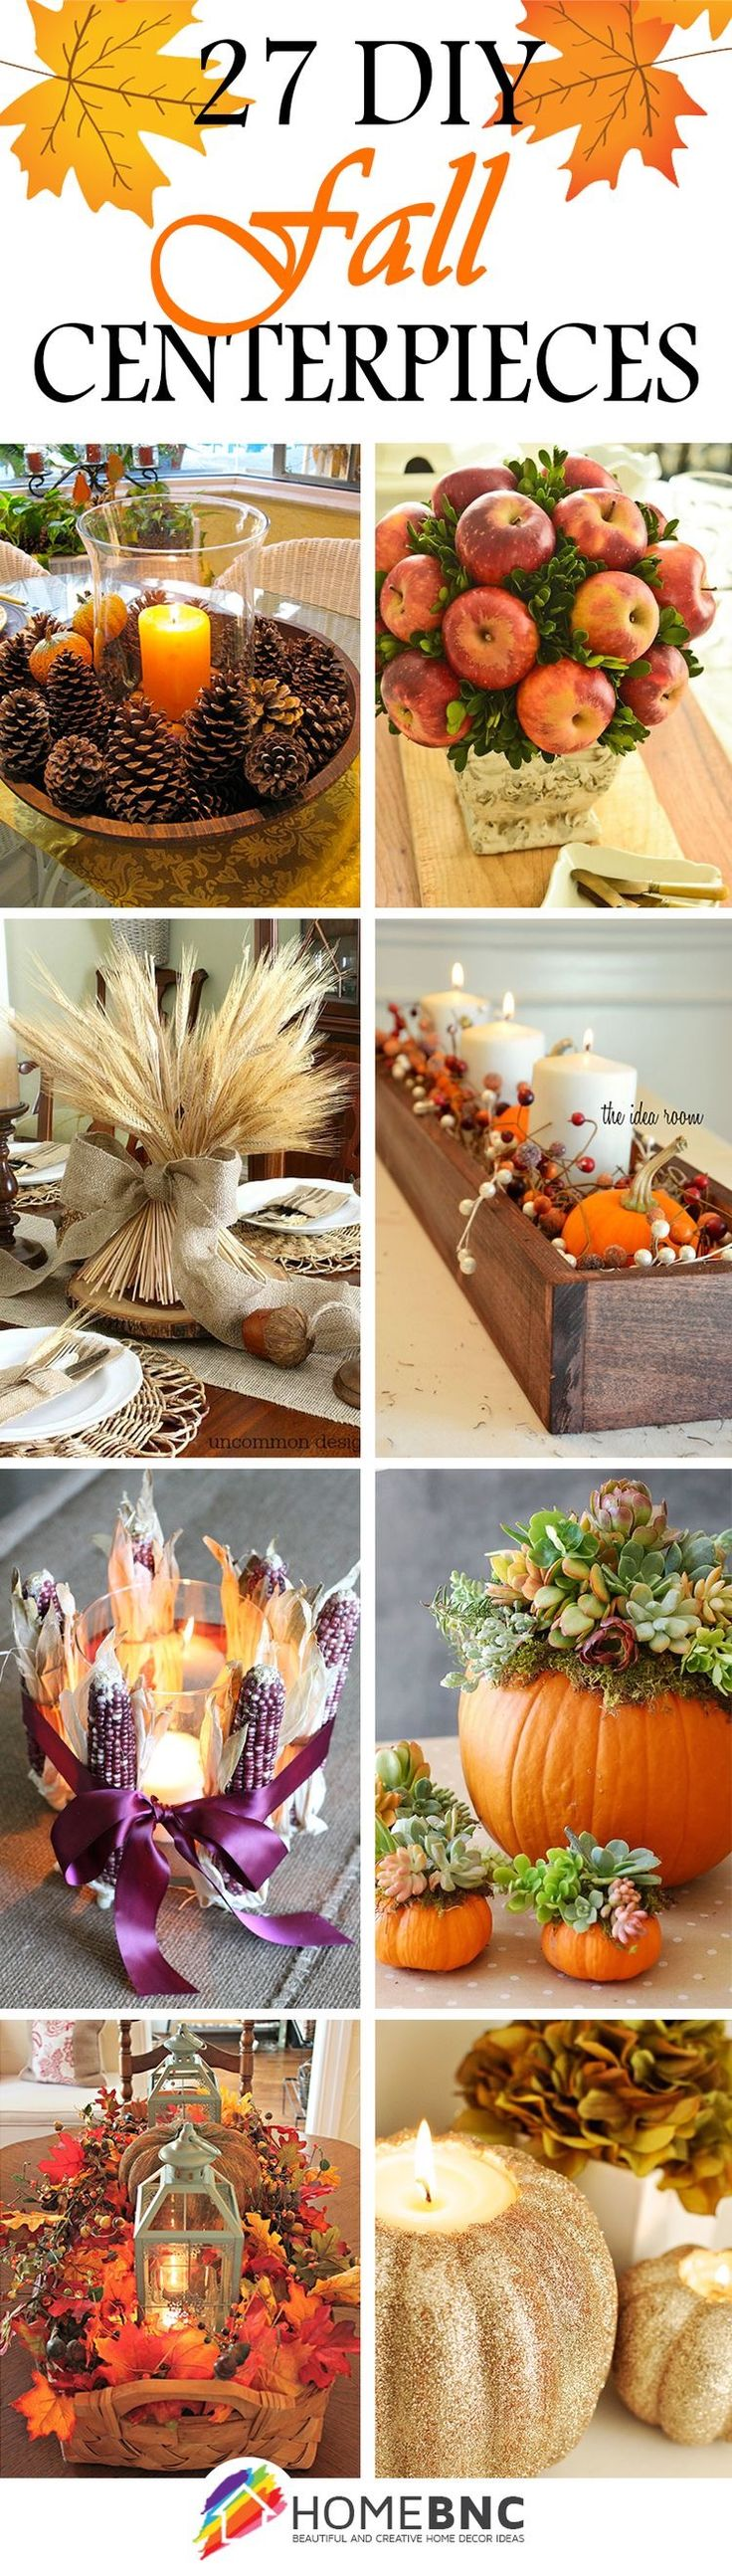 66 best Fall DIY Projects images on